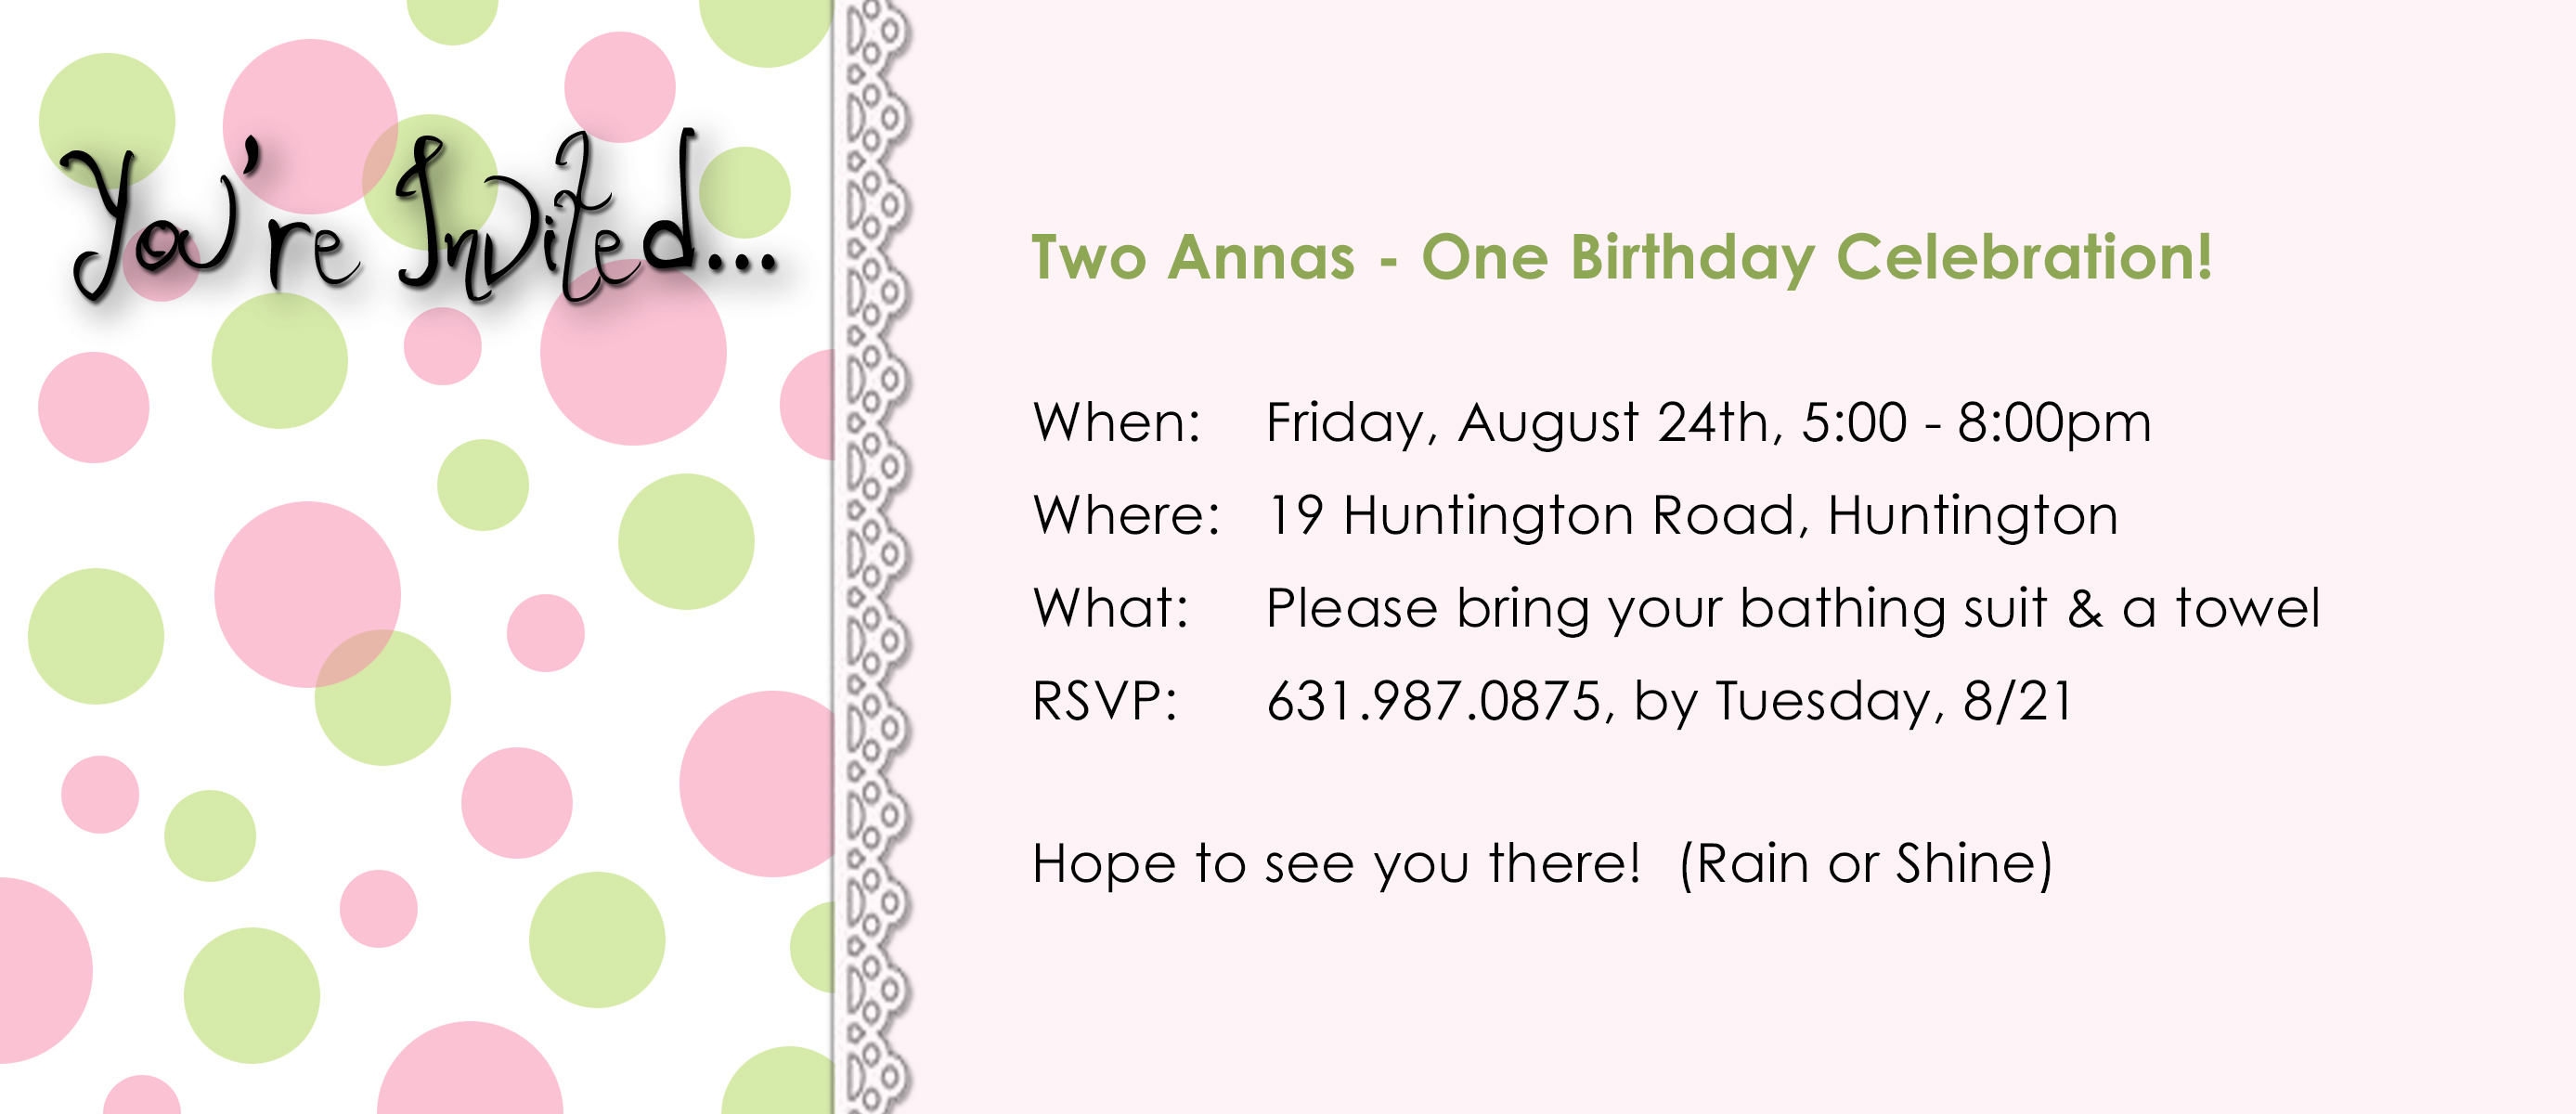 Birthday Party Invitation For Two 14 Year Old Girls